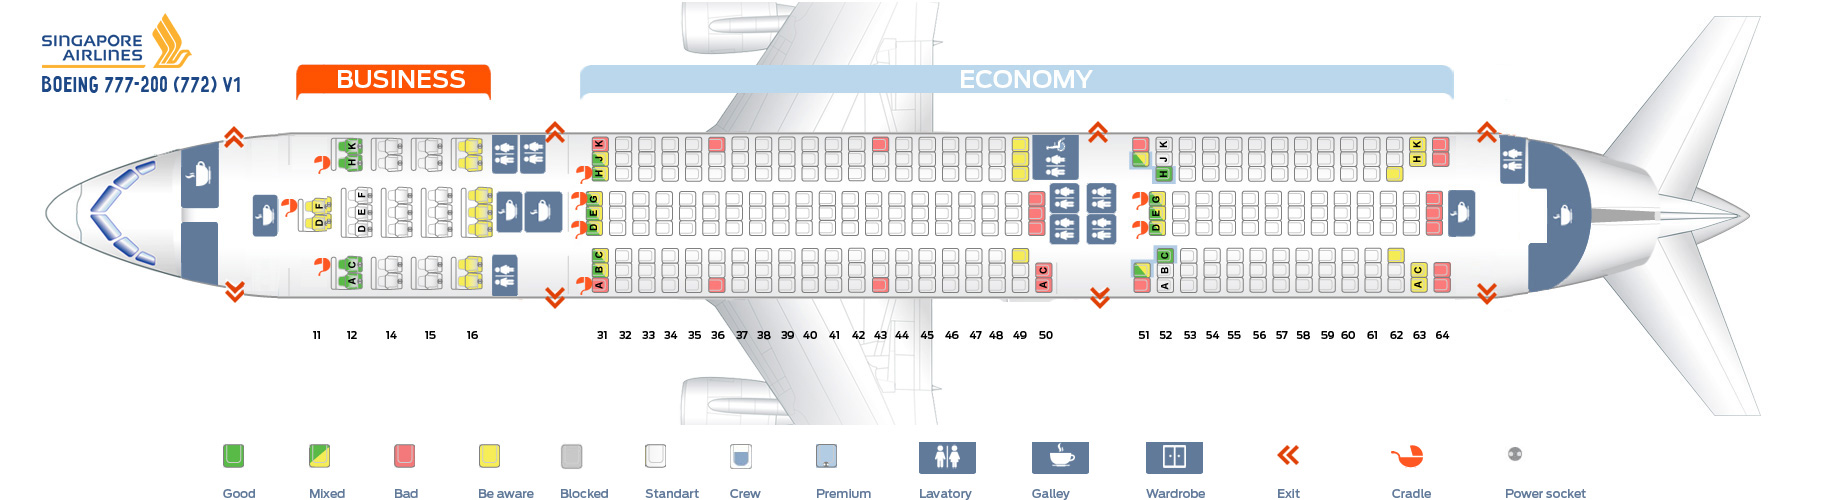 Boeing 777-200 Seat Map Seat map Boeing 777 200 Singapore Airlines. Best seats in plane Boeing 777-200 Seat Map